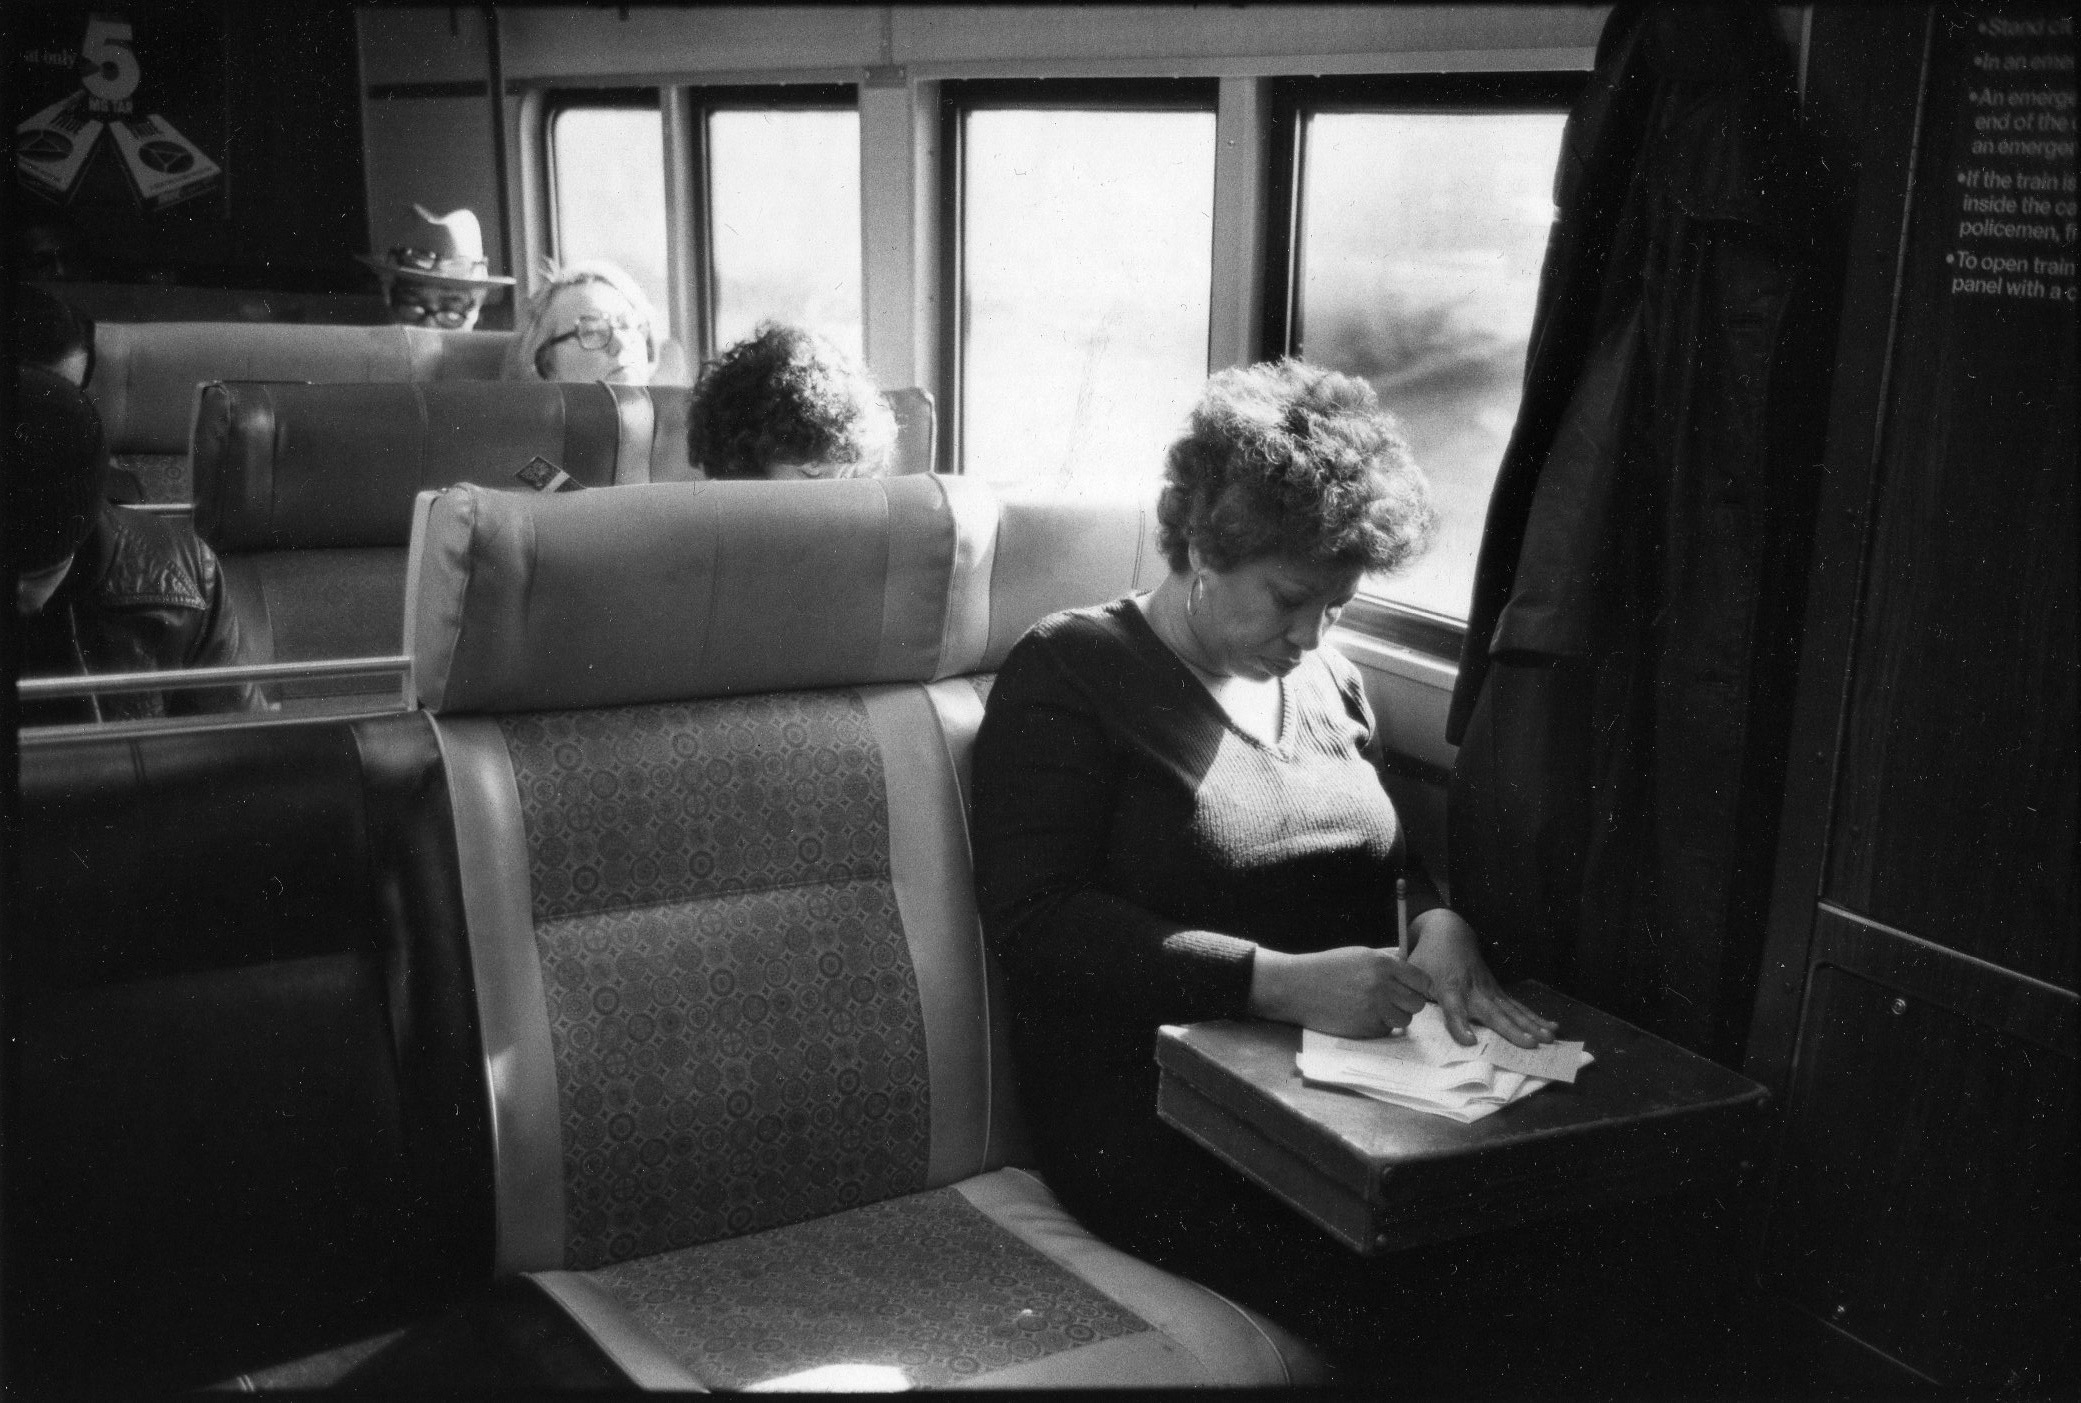 Morrison on her way to Yale University, where she was teaching in the department of African-American studies.